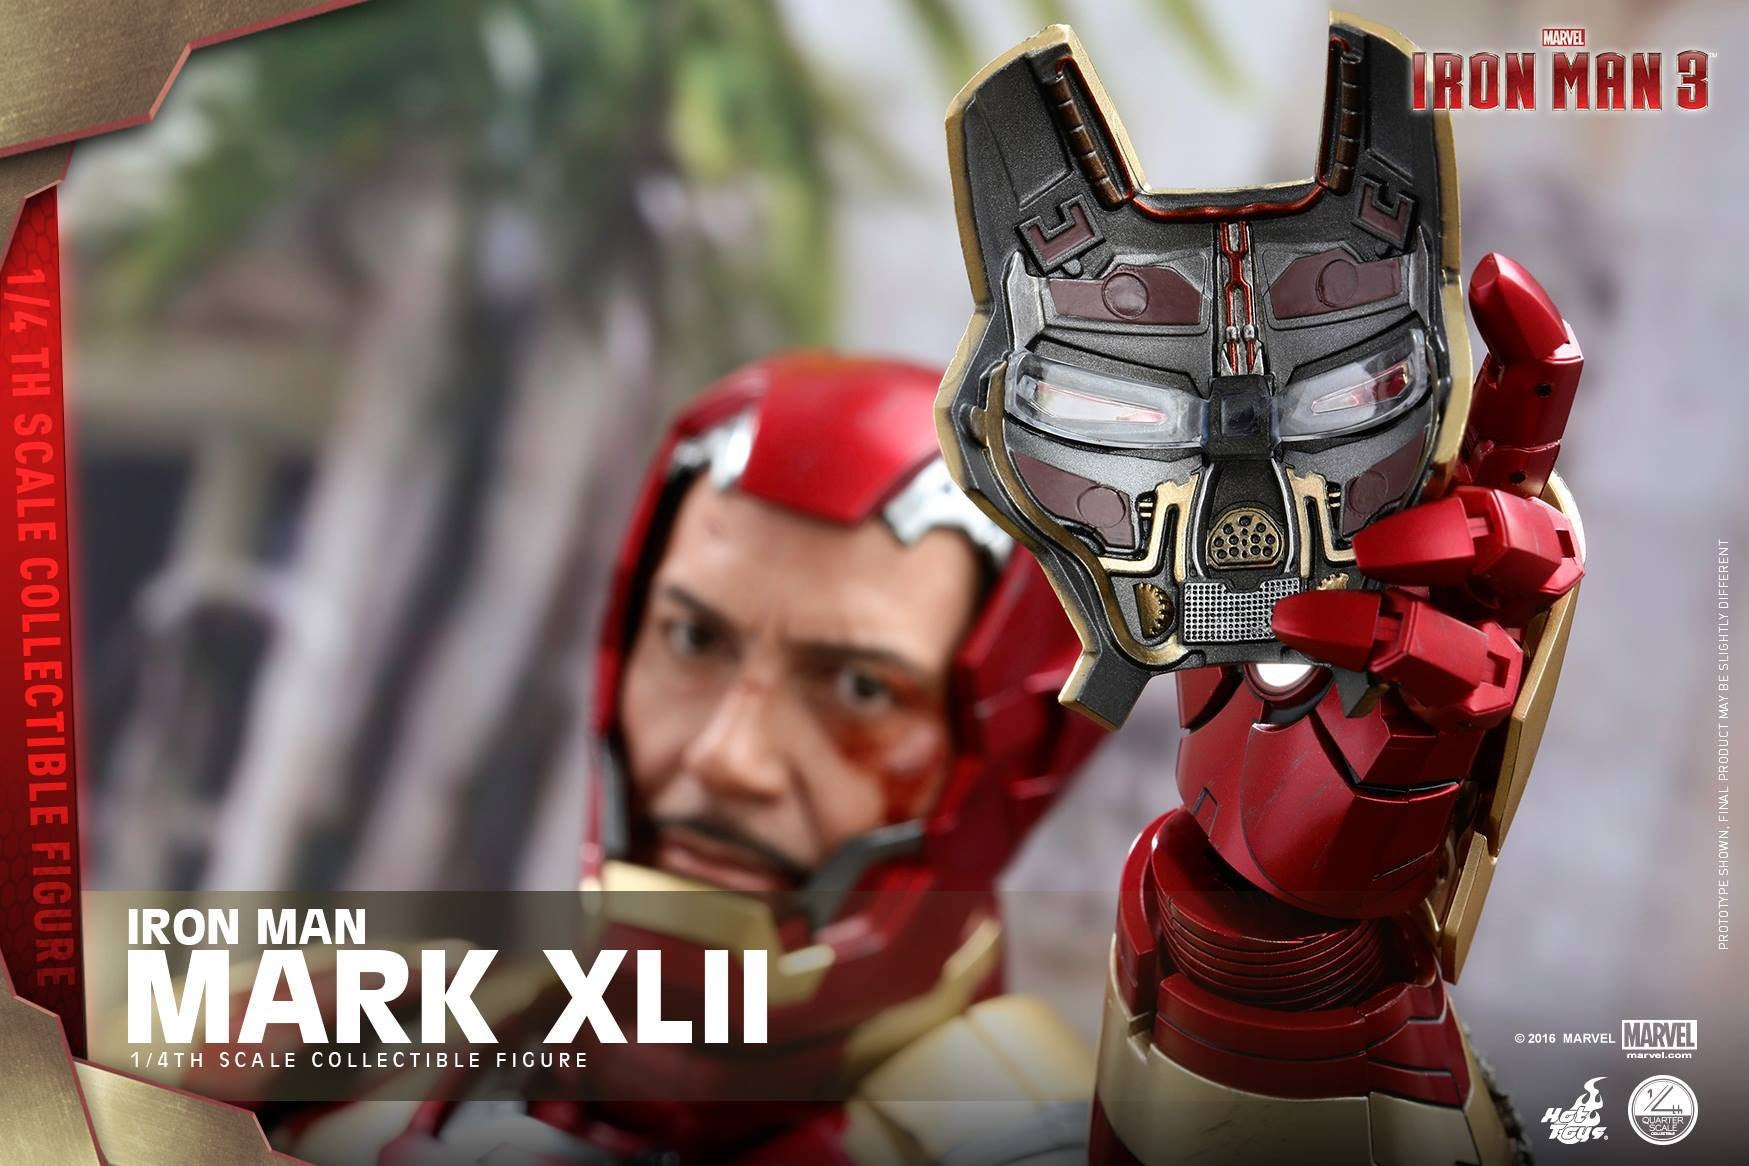 Hot Toys - QS007 - Iron Man 3 - 1/4th scale Mark XLII - Marvelous Toys - 11